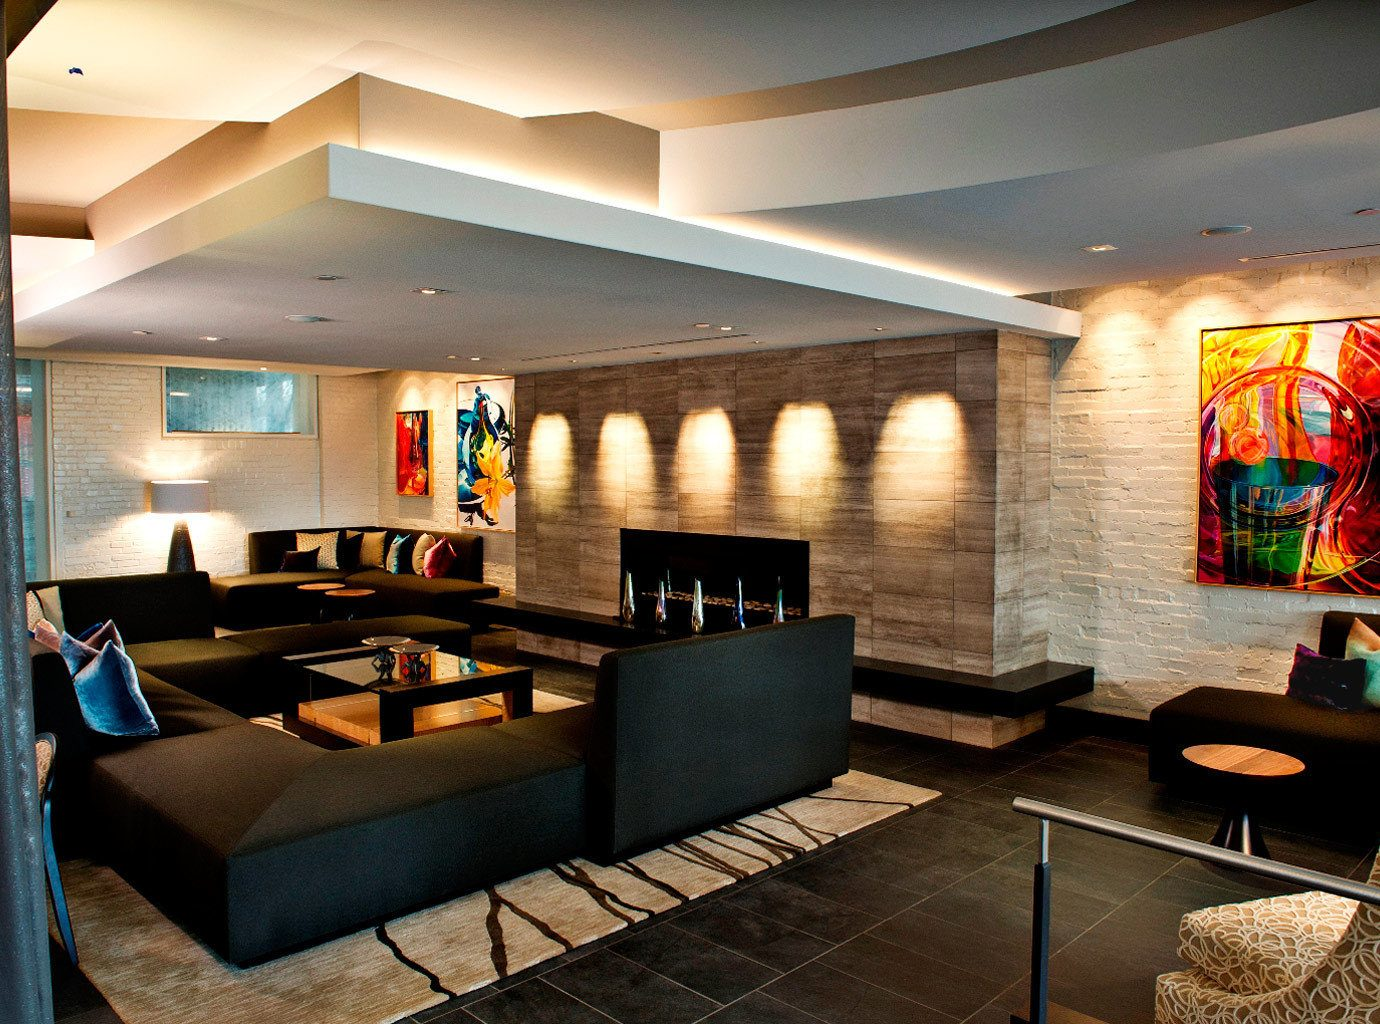 Fireplace Lounge Modern property Lobby recreation room living room lighting home restaurant